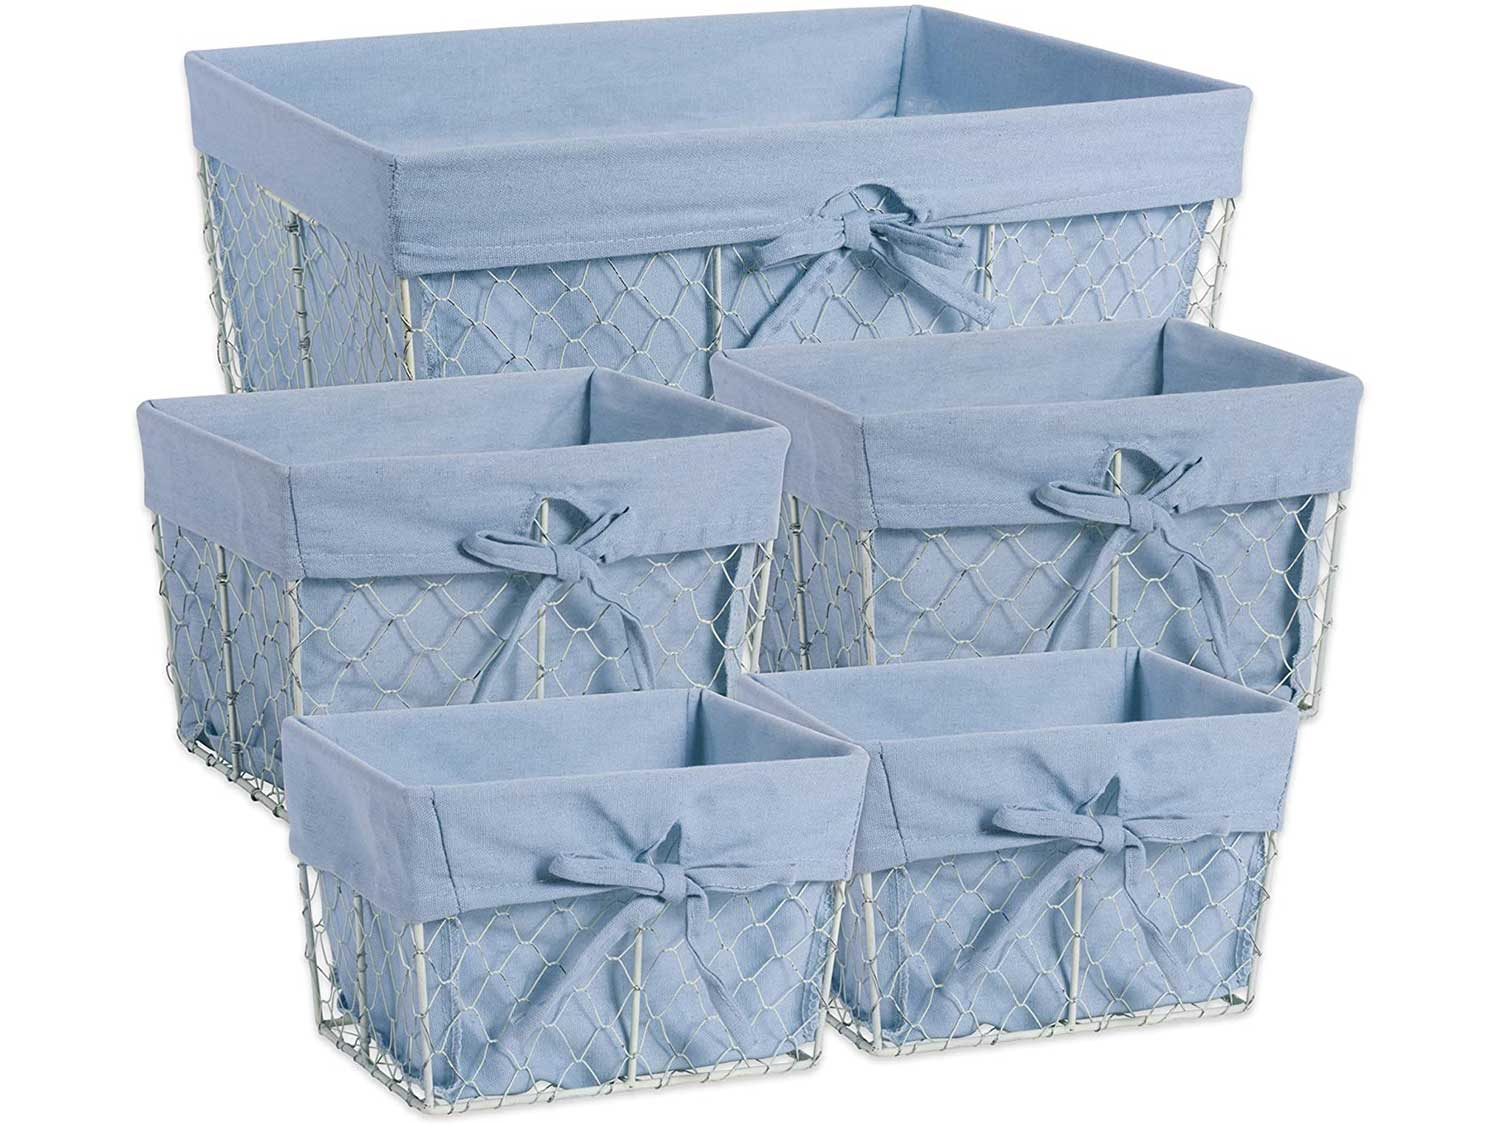 DII Chicken Wire Baskets Antique White for Storage Removable Fabric Liner, Assorted Set of 5, Washed Denim 5 Piece